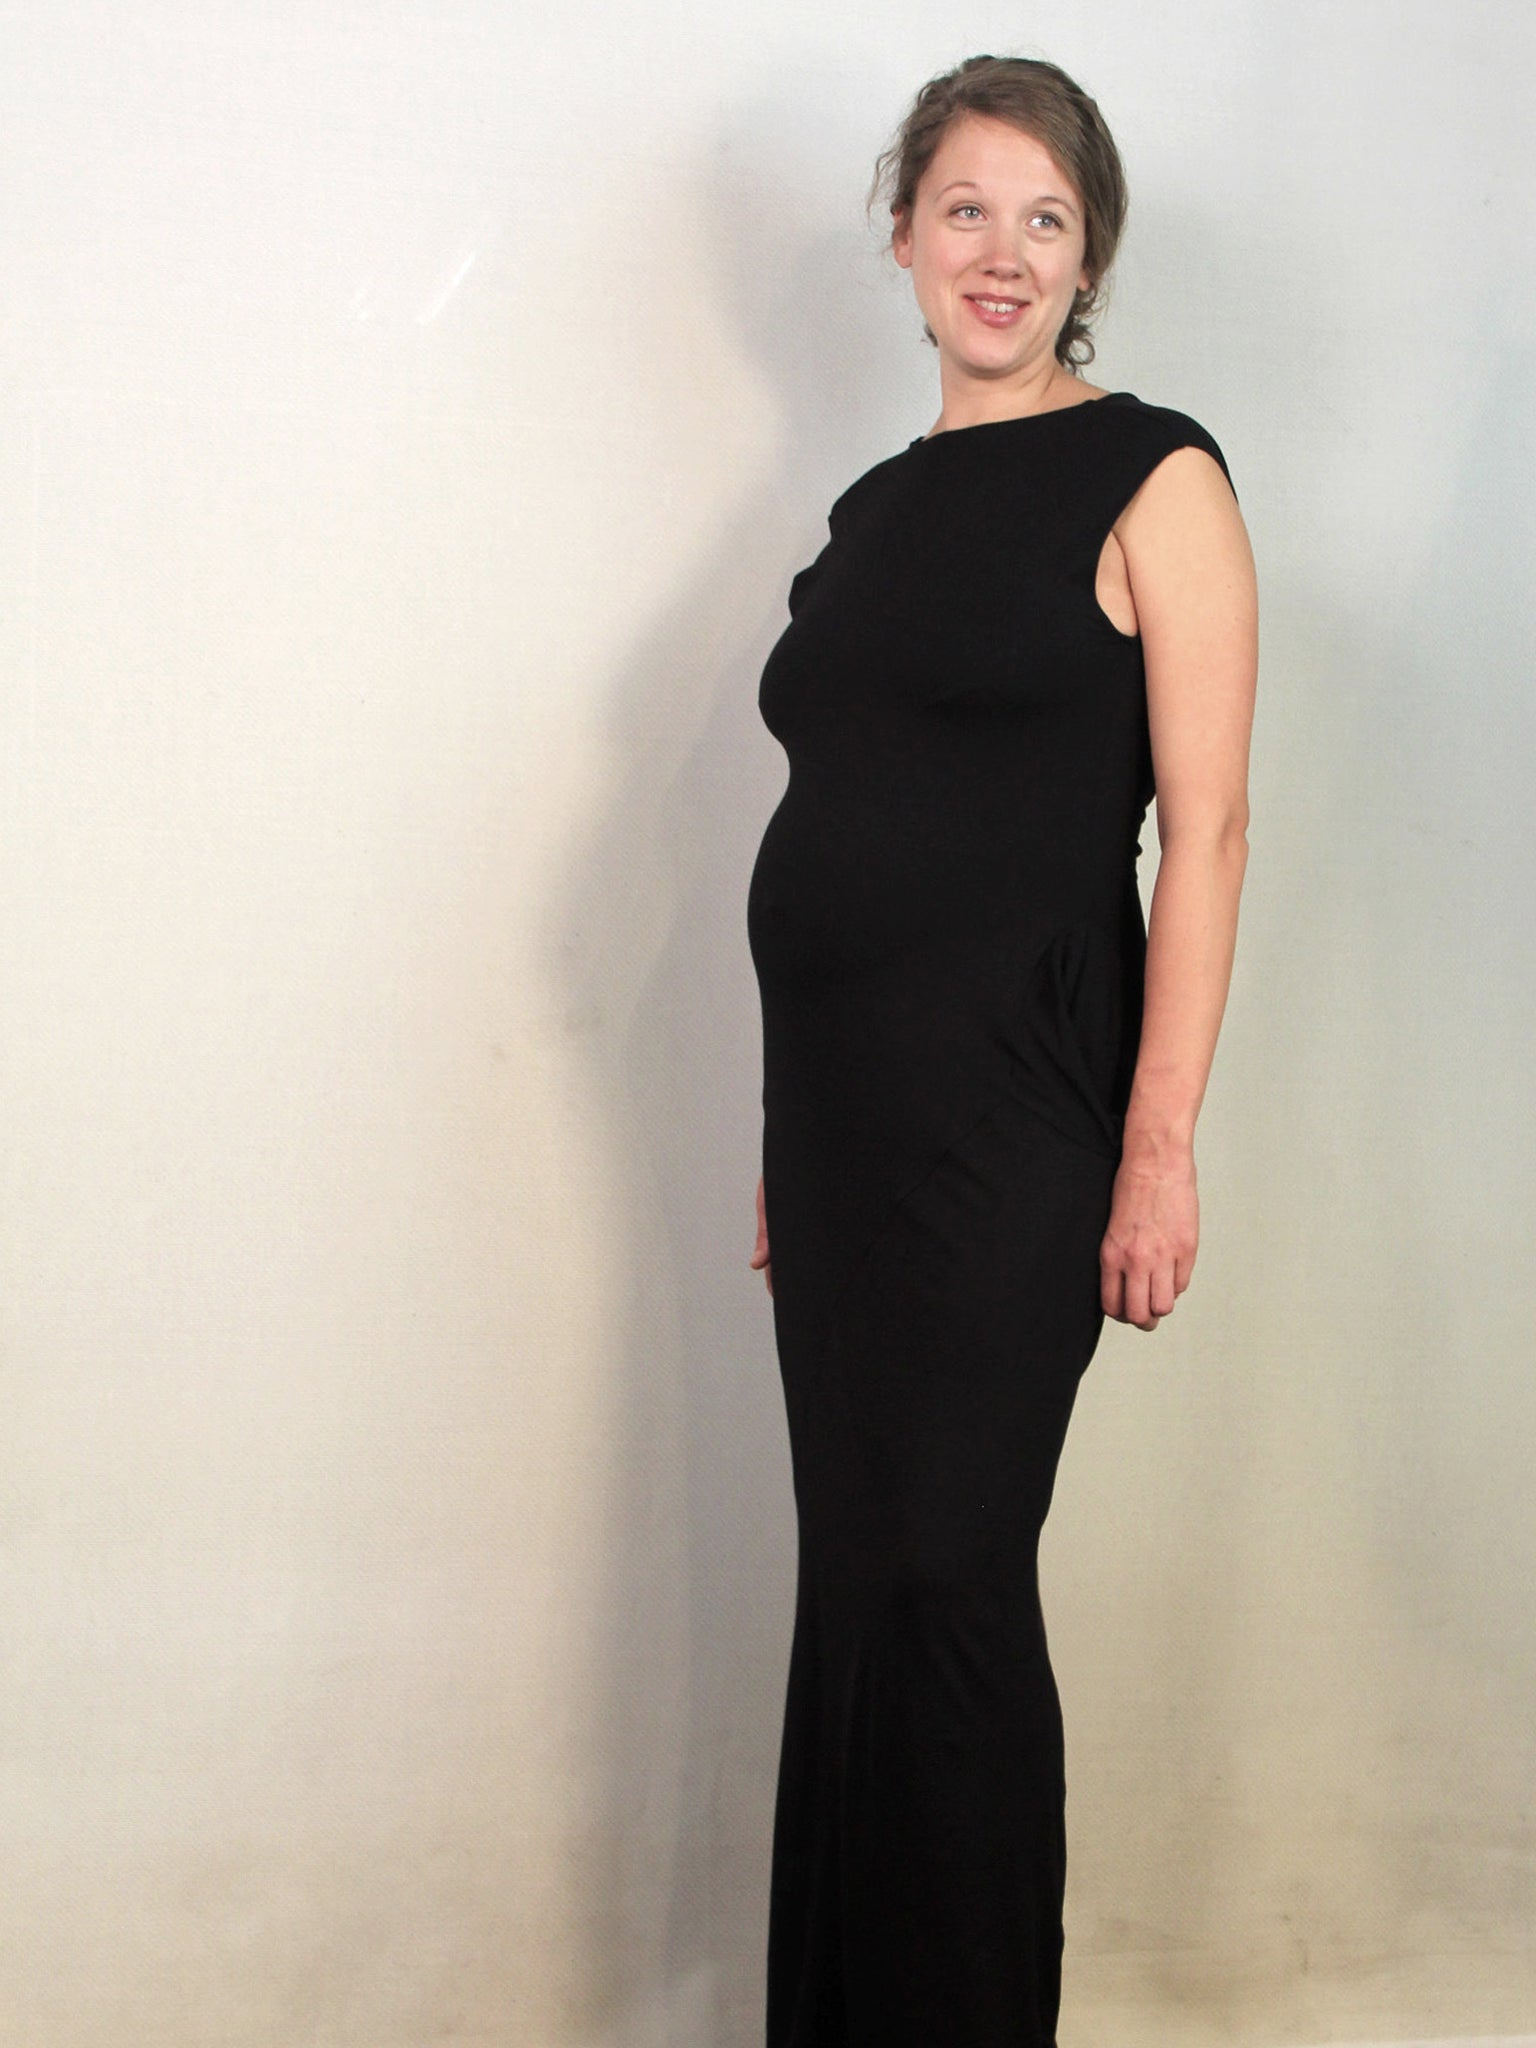 Zen NOmad and Thieves  Metamorph bamboo dress convertible to 24 , sustainable style, black Maternity